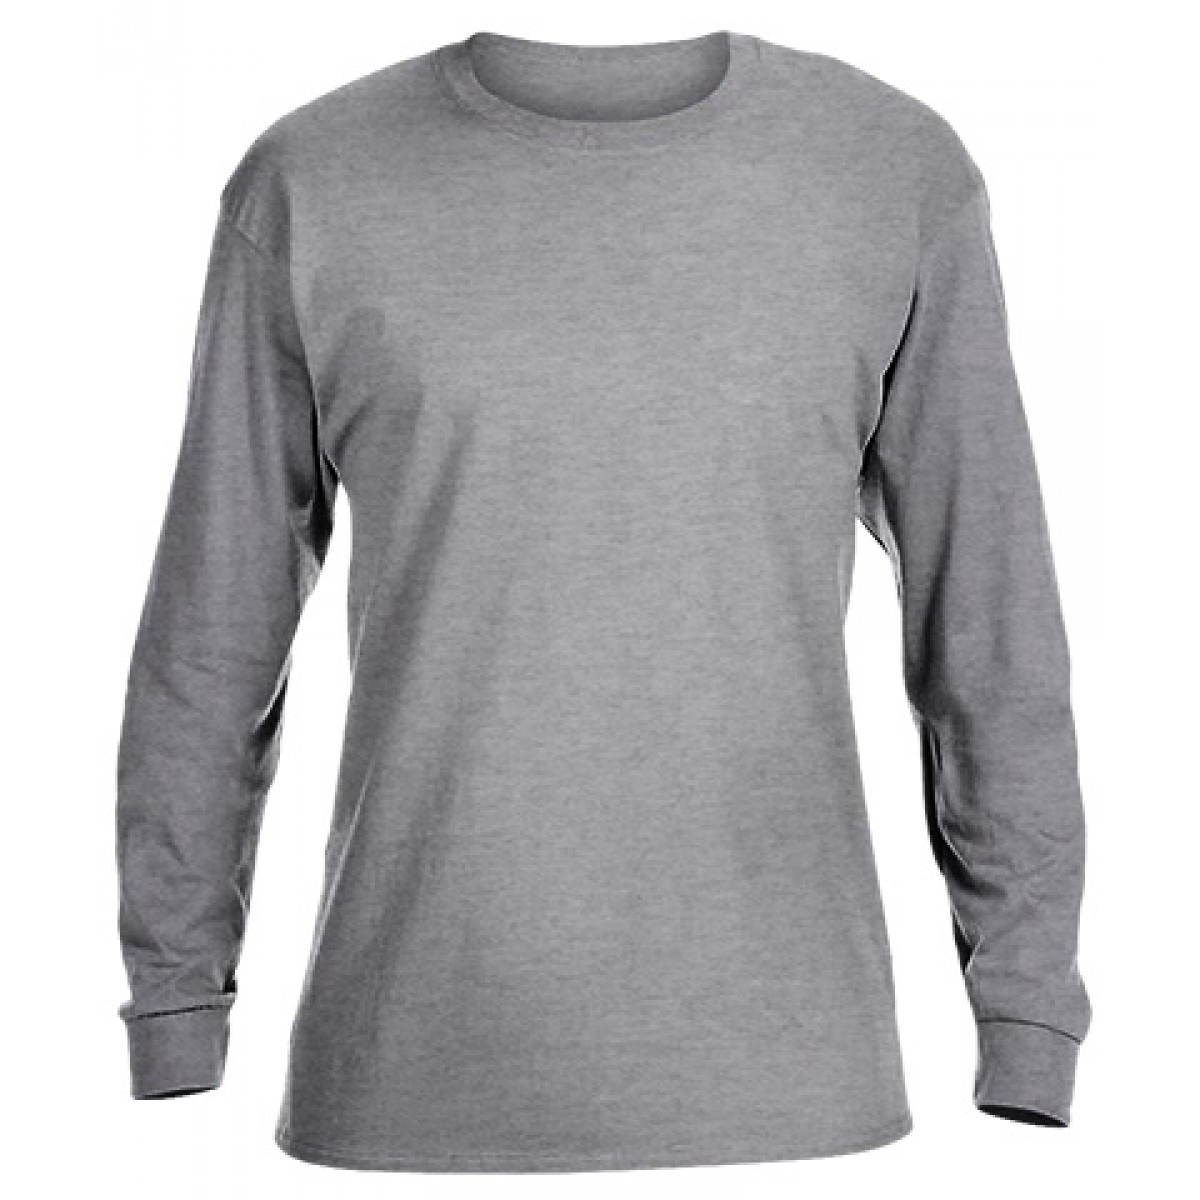 Heavy Cotton Long-Sleeve Adidas Shirt-Sports Grey-YL